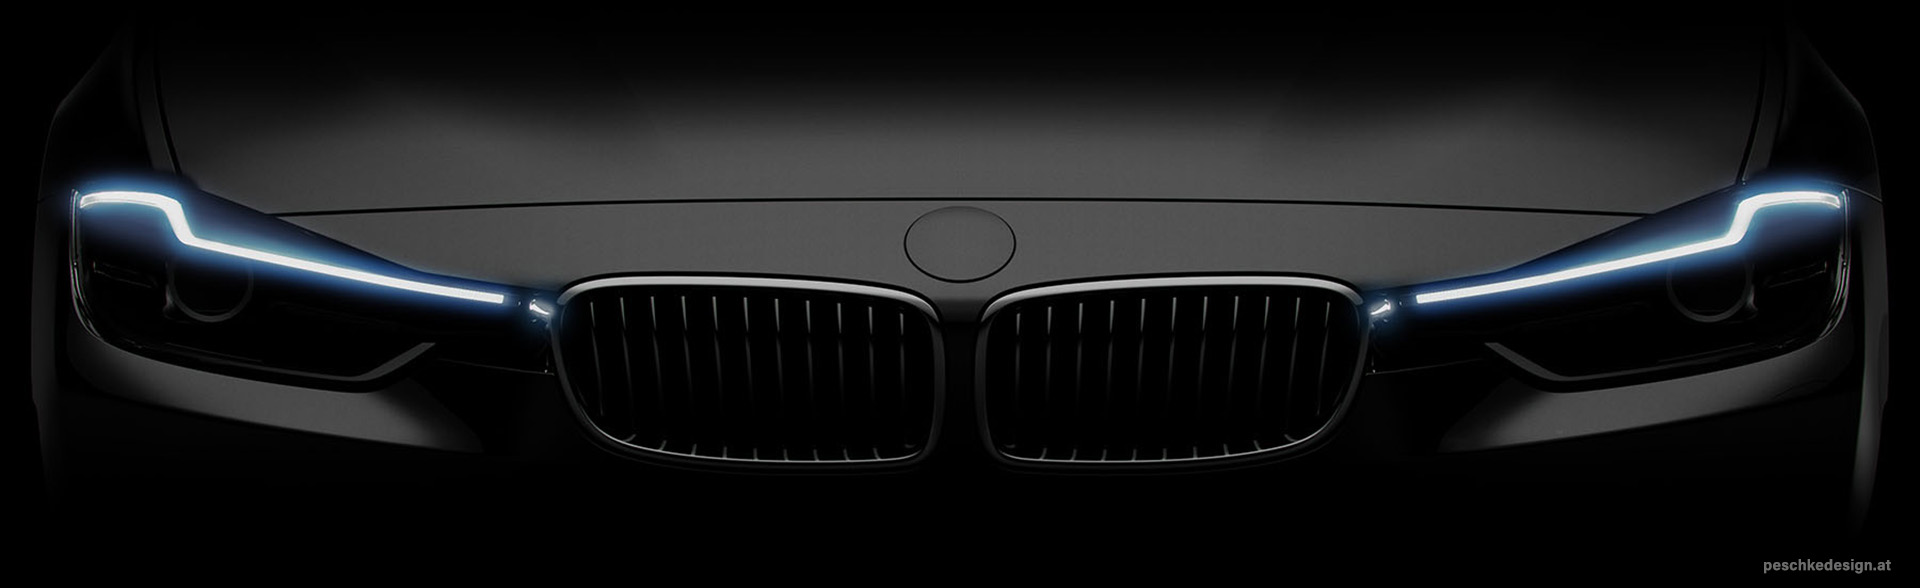 Front view of headlight design for zkw.